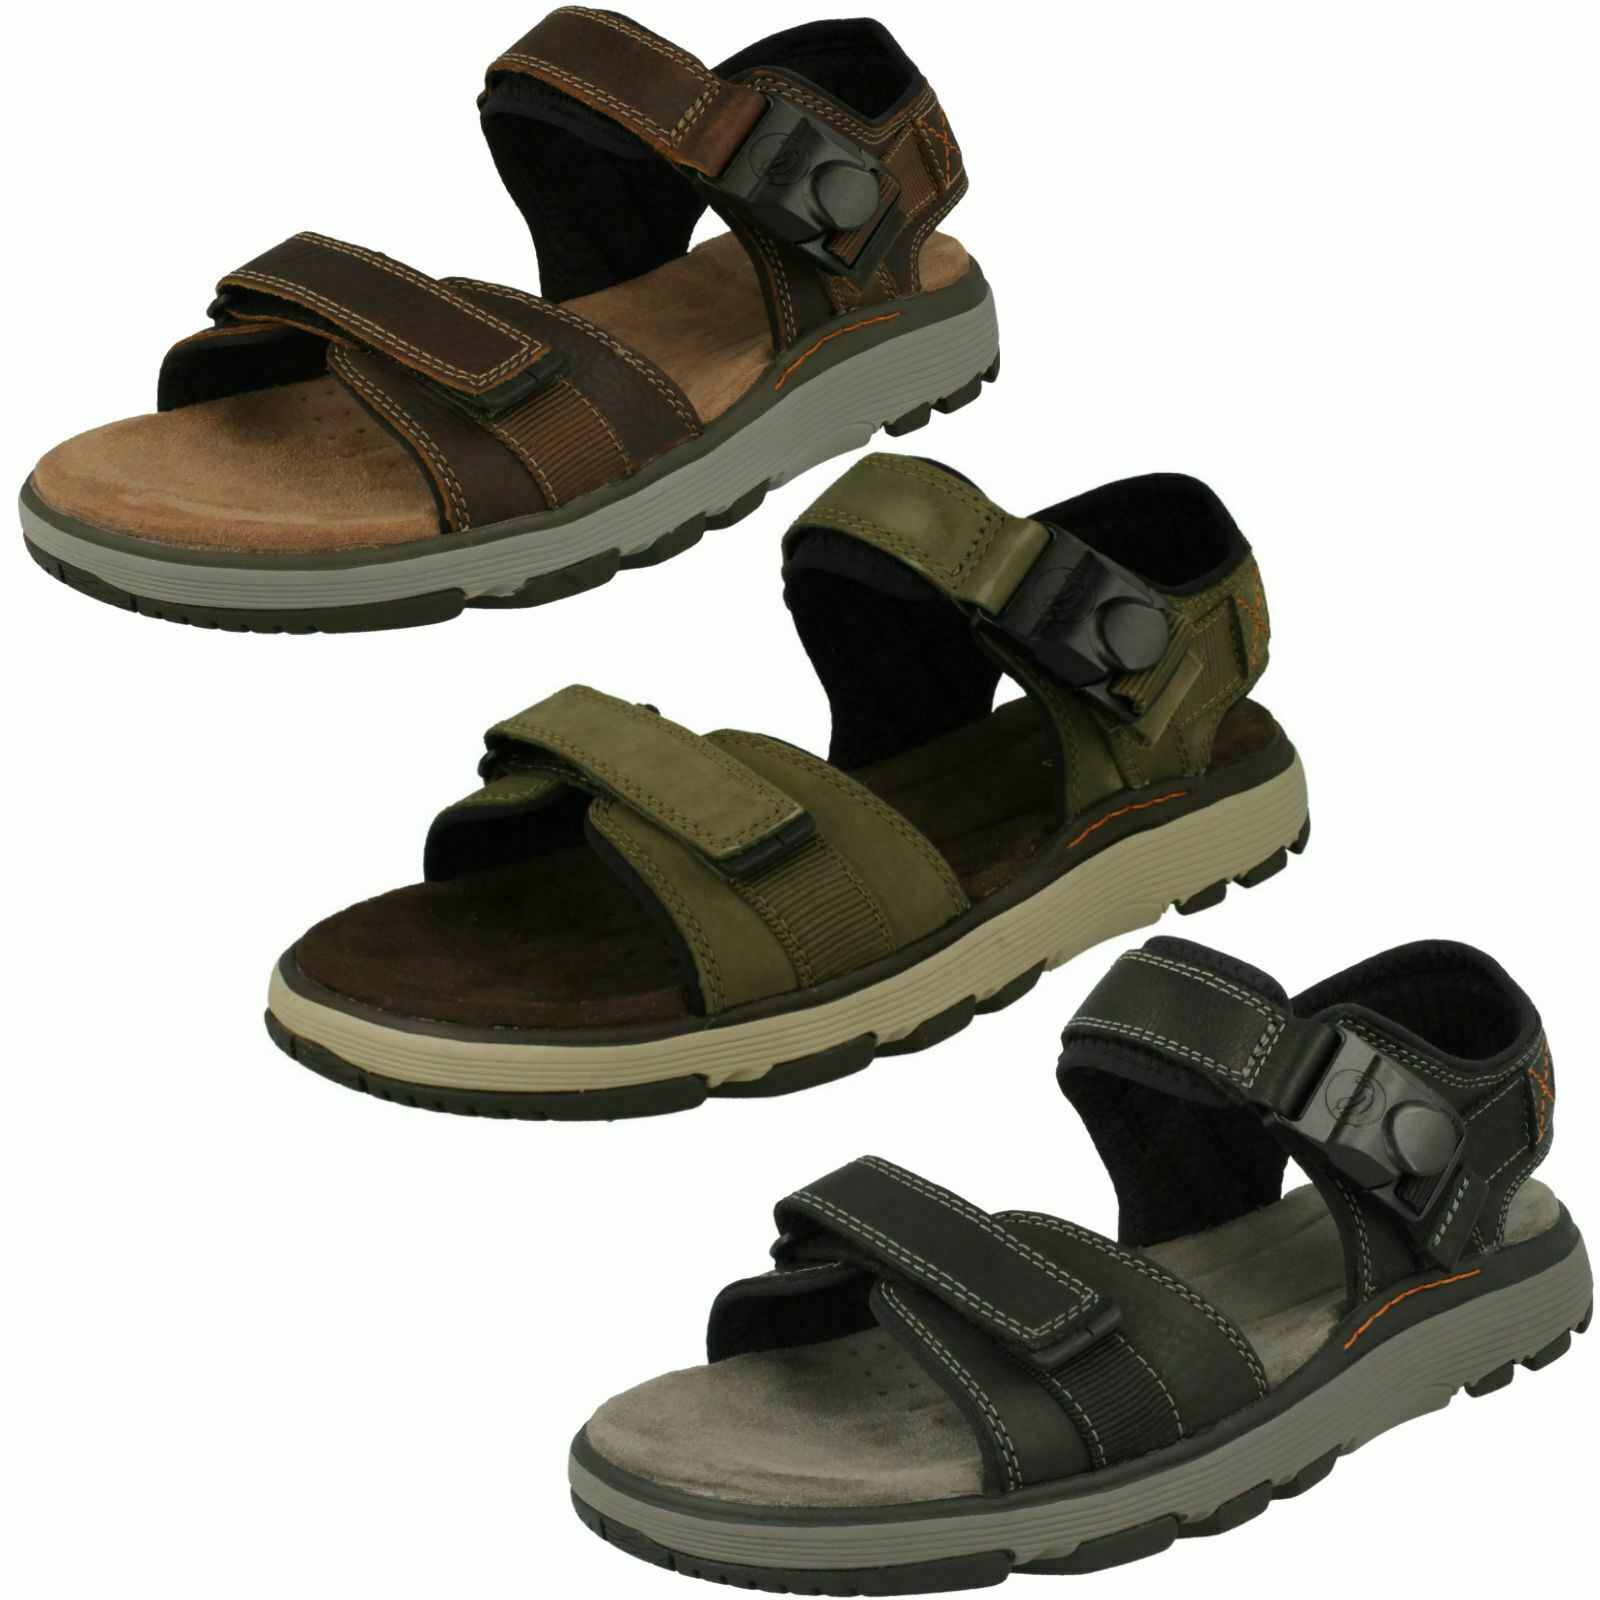 Mens Clarks Casual  Strapped Sandals - Un Trek Part  sconti e altro